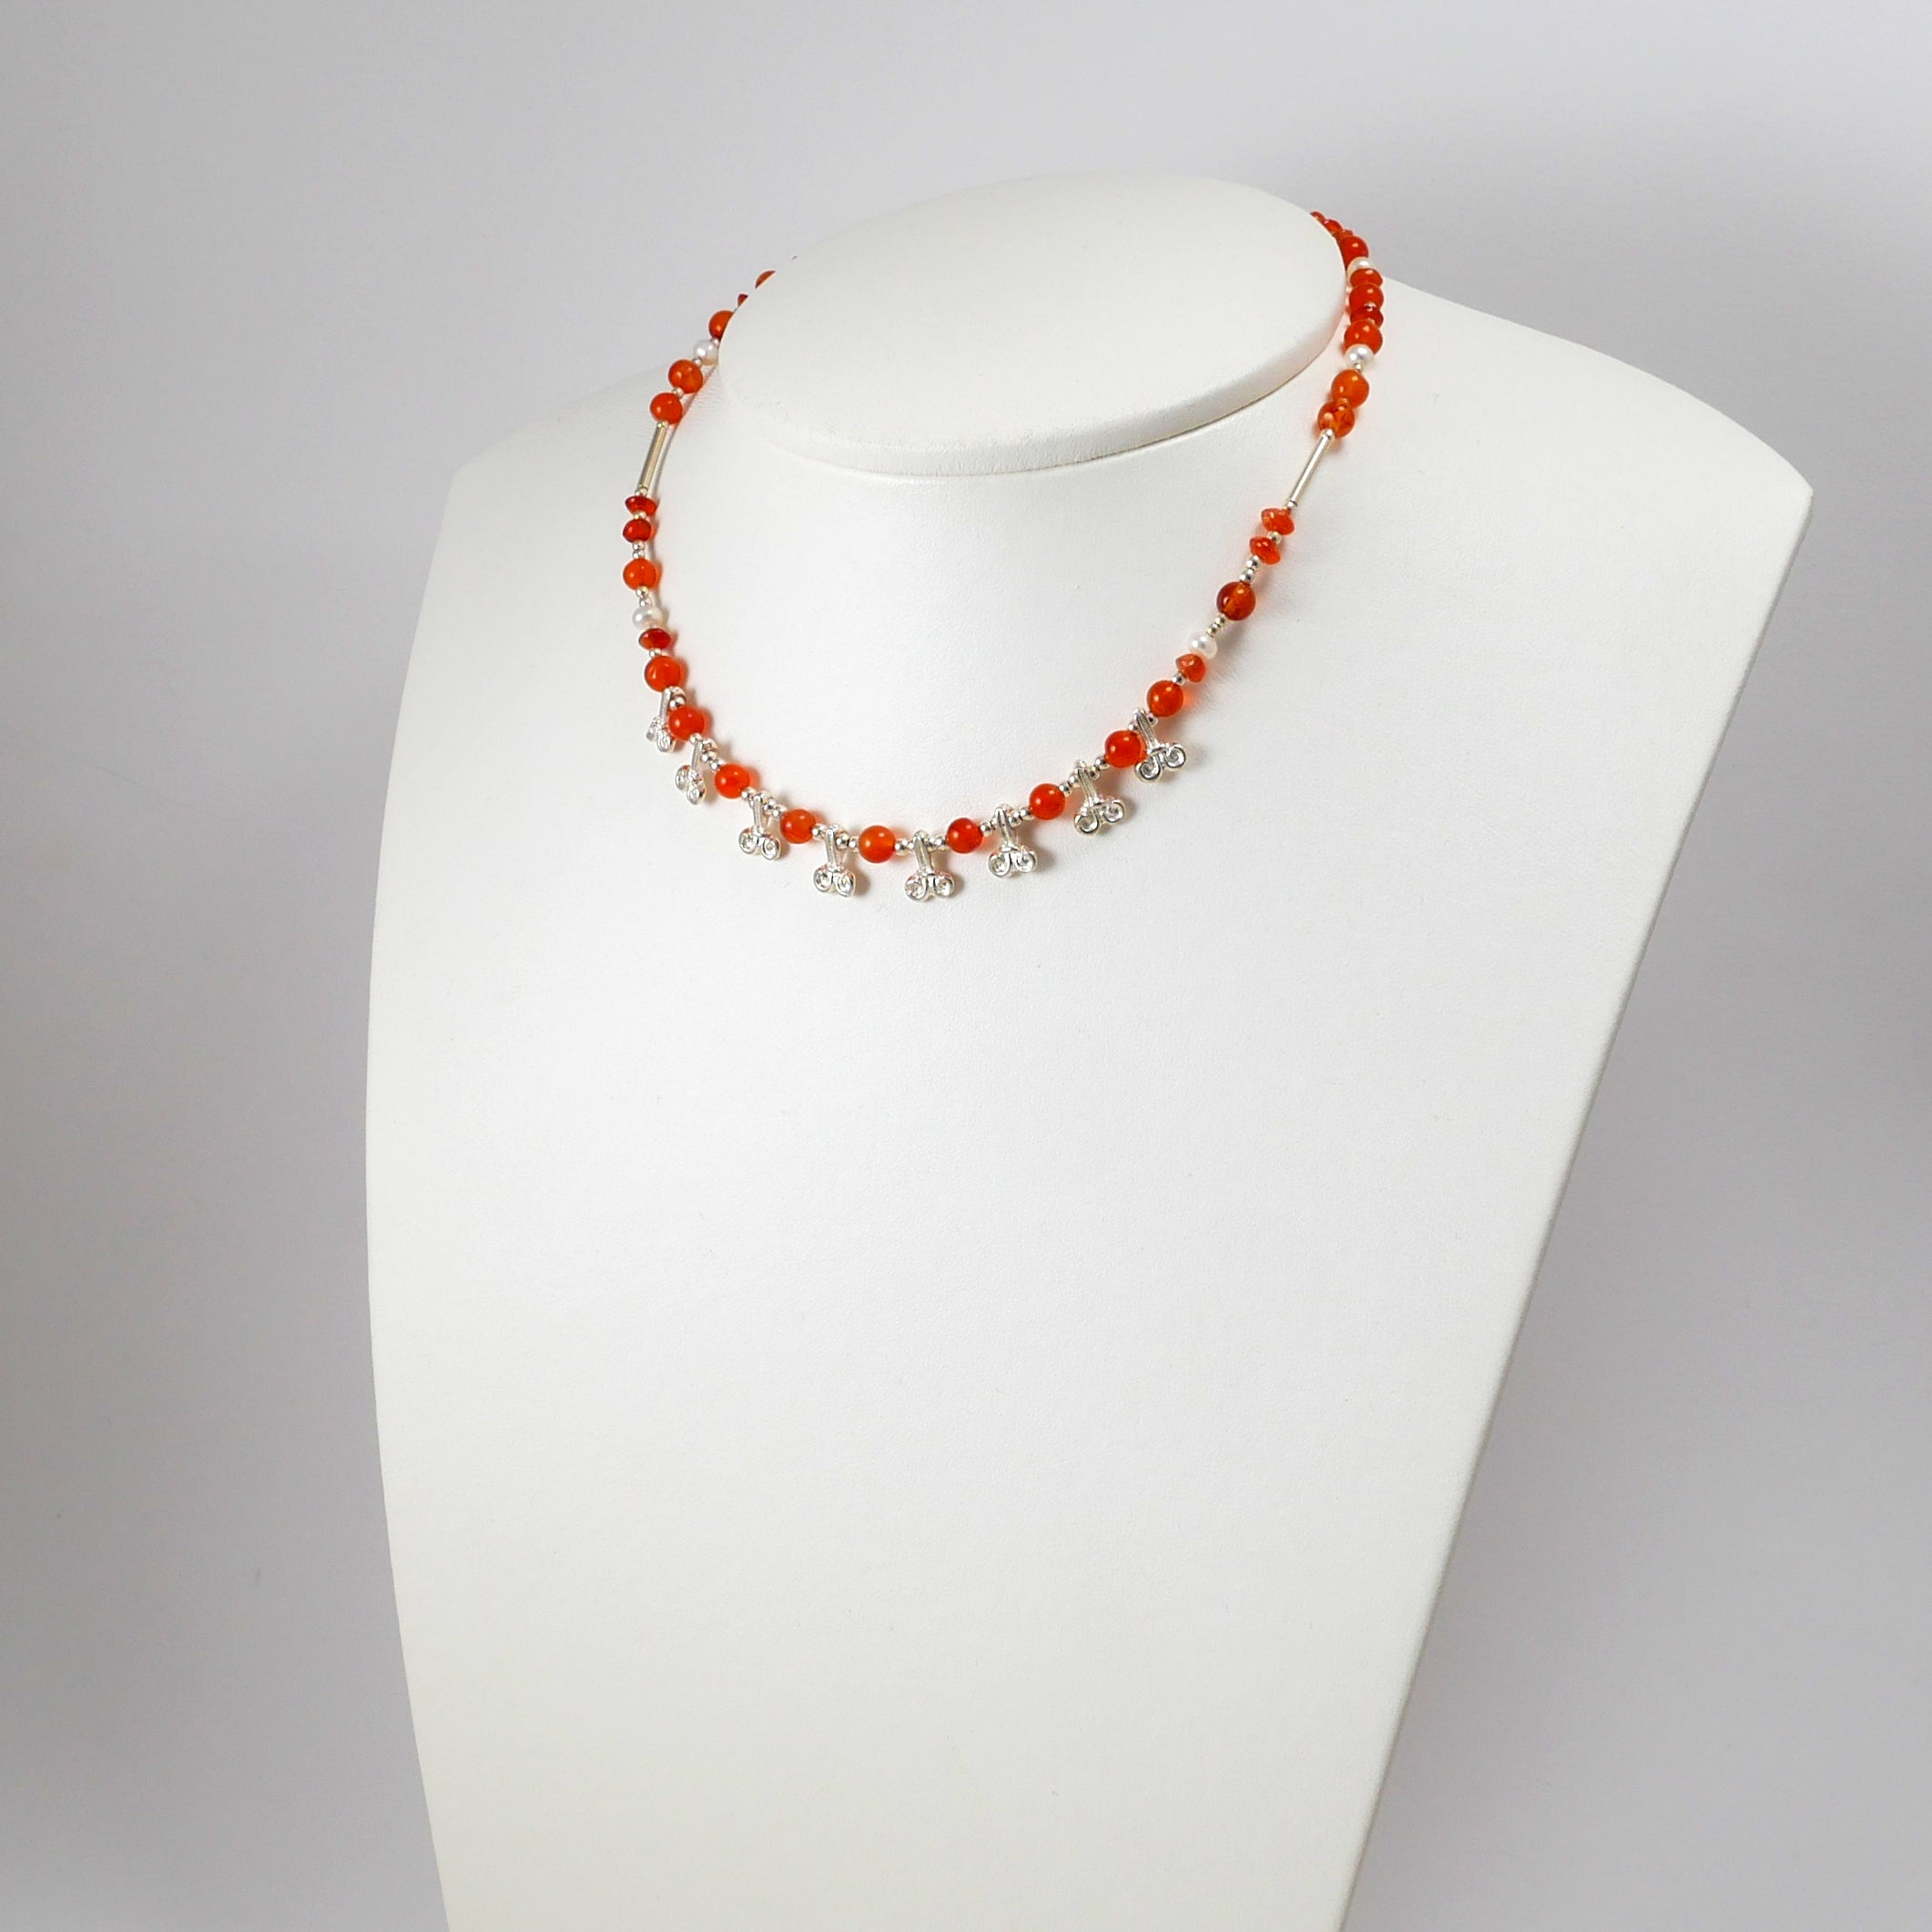 Carnelians, Pearls, and Silver Lilies Necklace - Katerina Roukouna